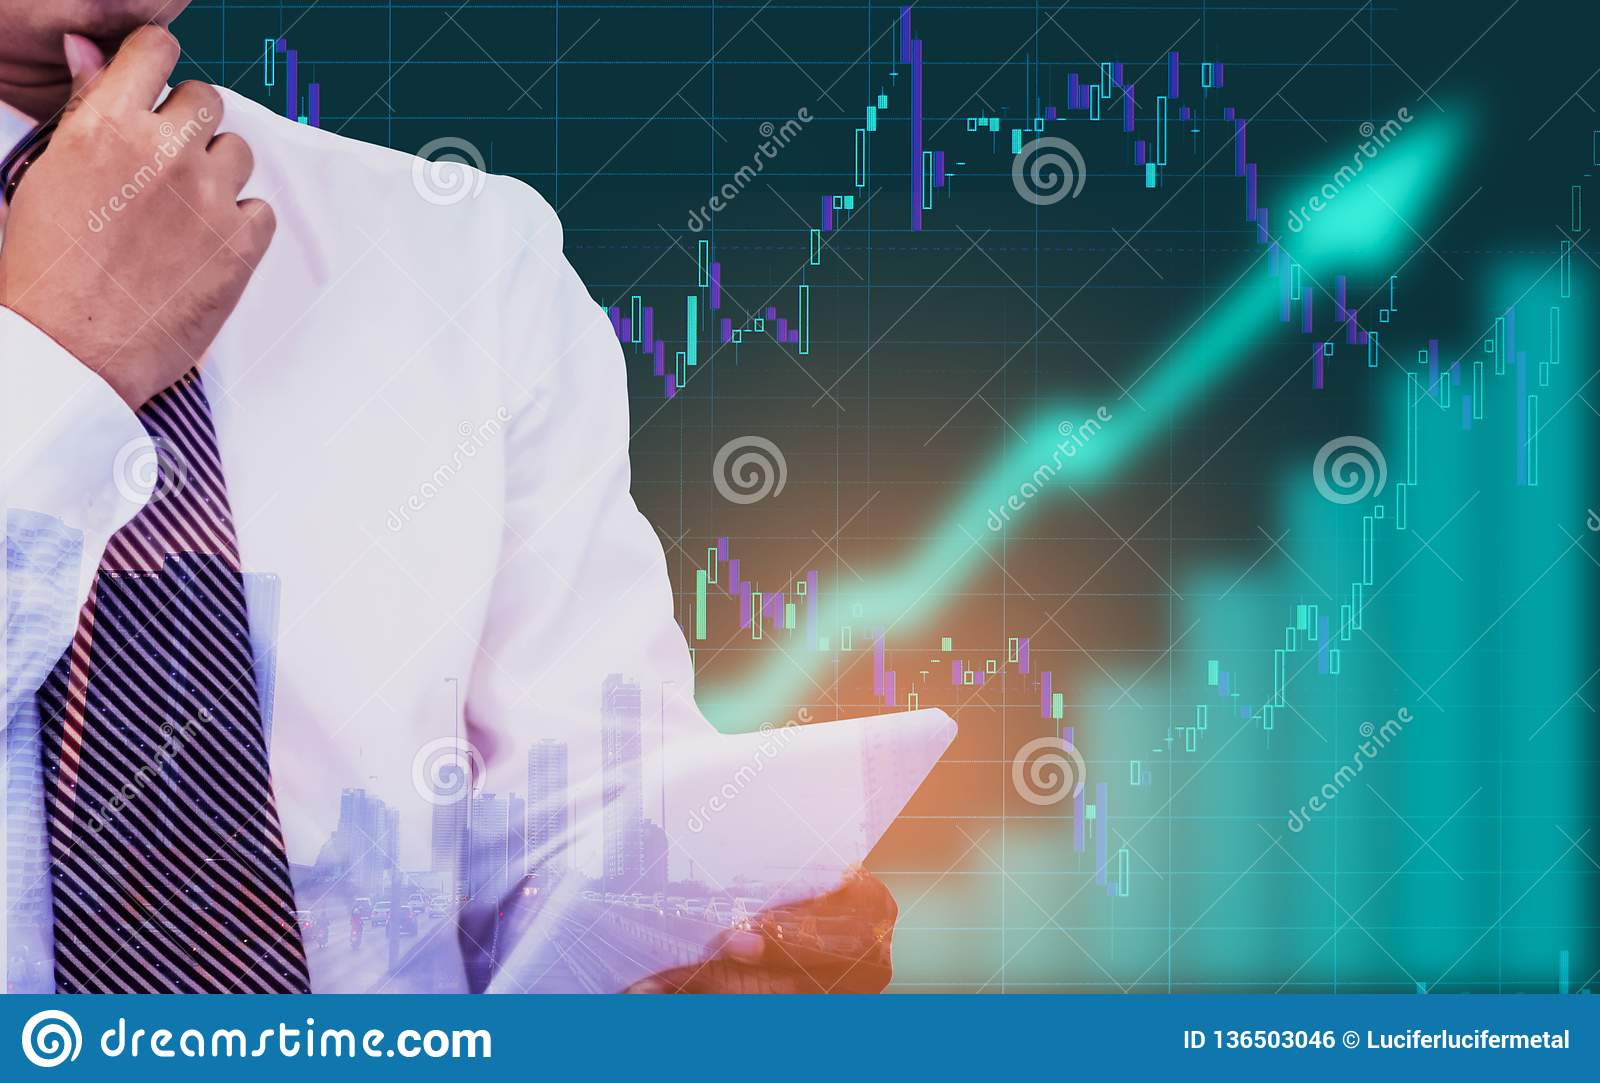 Double exposure - businessman holding a tablet in hand, background is an arrow sign and stock graphs and icons,Concept of